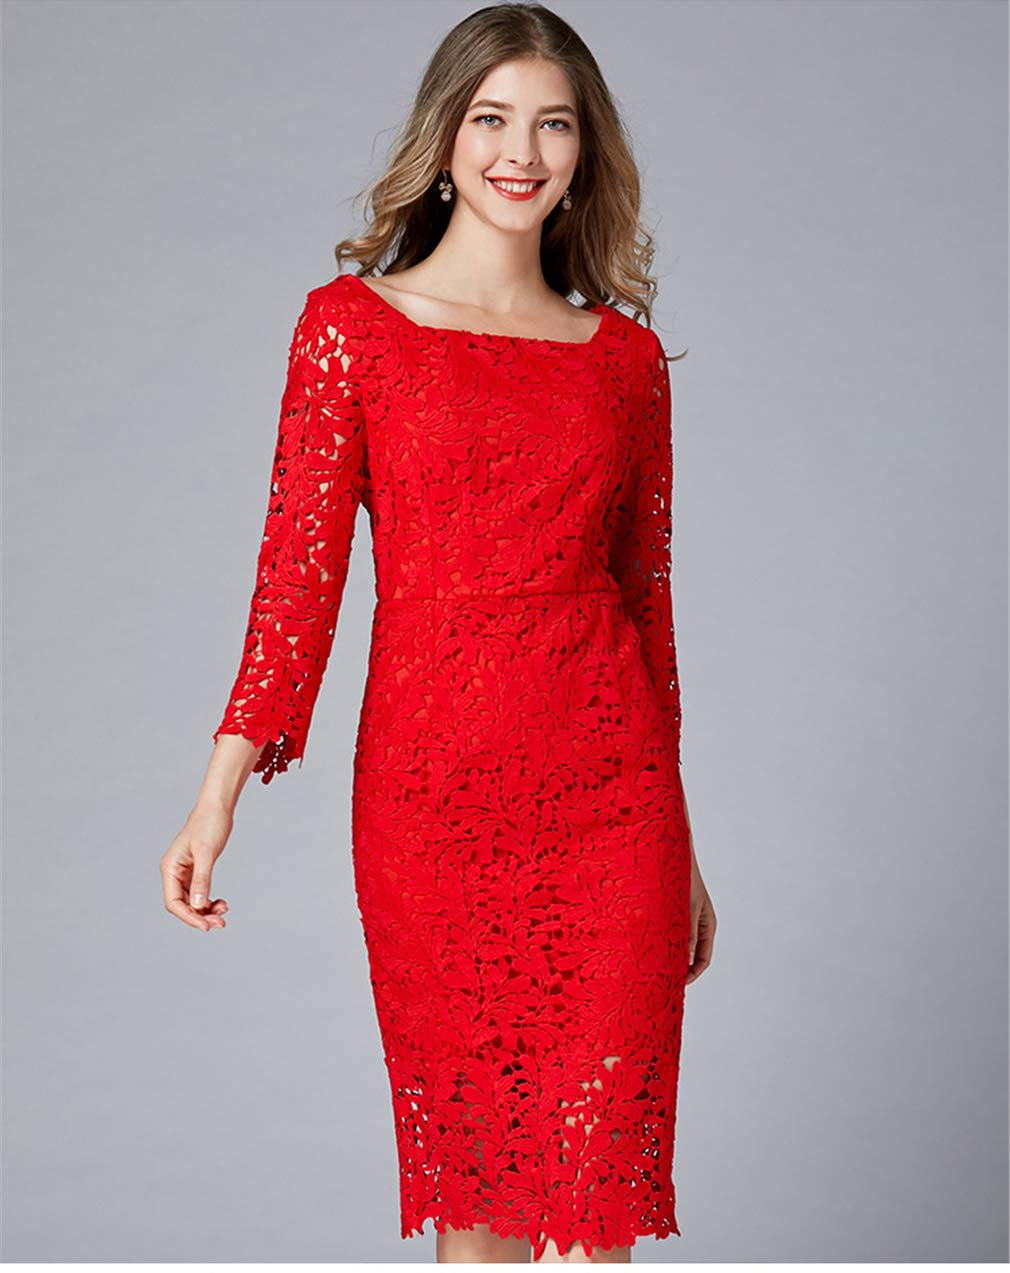 3XL Dress Women red Sexy Lace Party Cocktail Knee Length Girl Bridesmaid Clothing (L5XL)